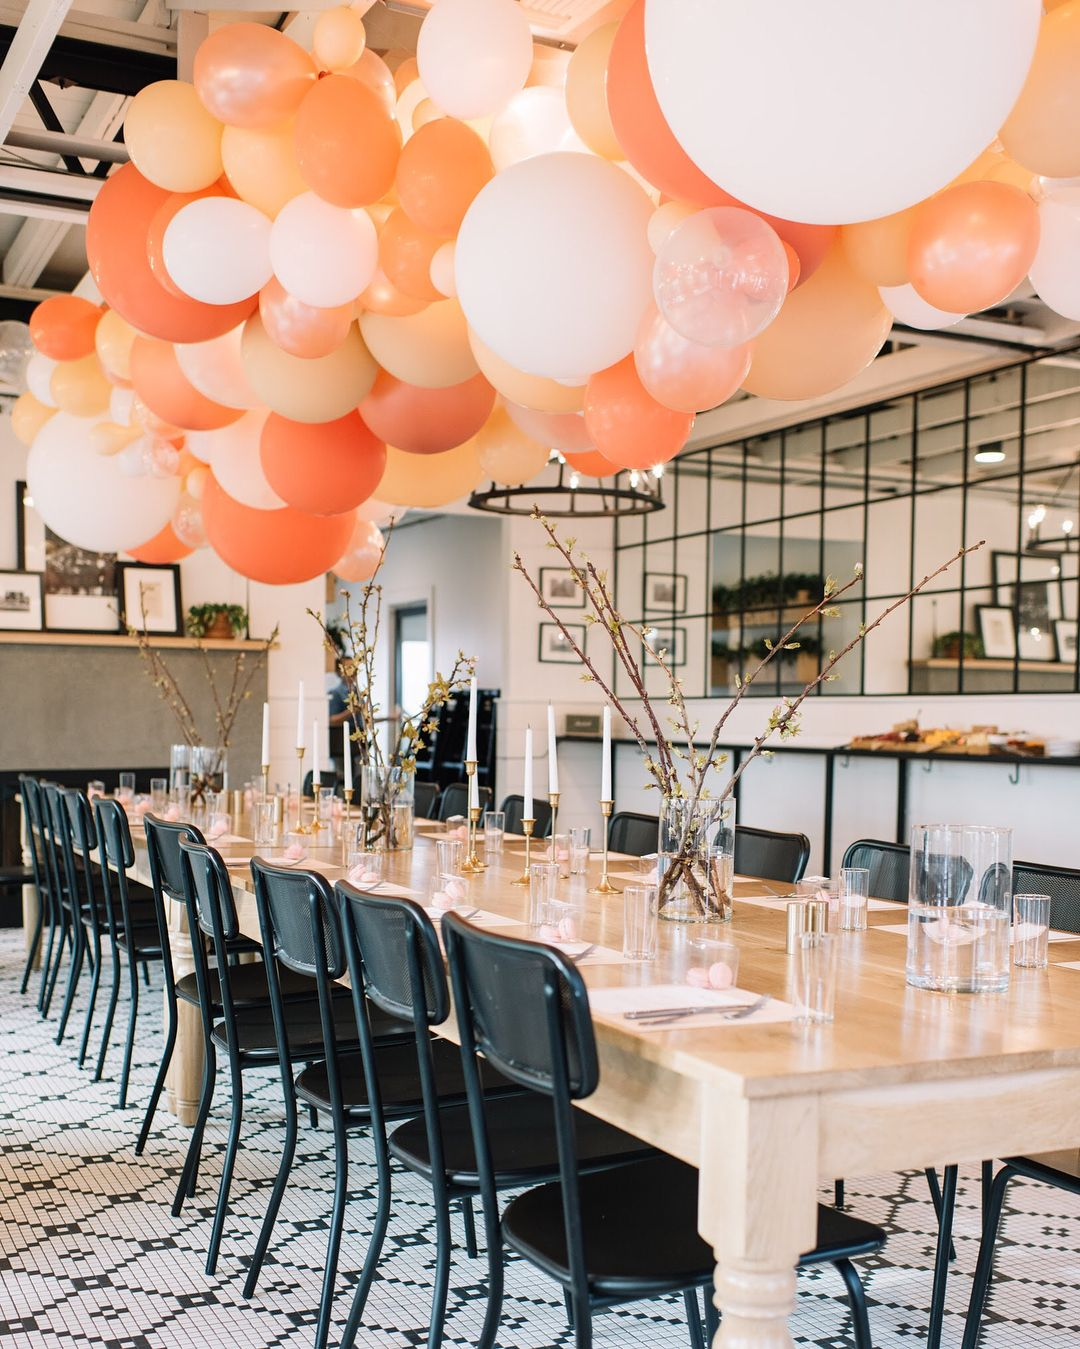 Nursery Decor Ideas From Joanna Gaines: Joanna Gaines' Surprise 40th Birthday Party Looked Like A